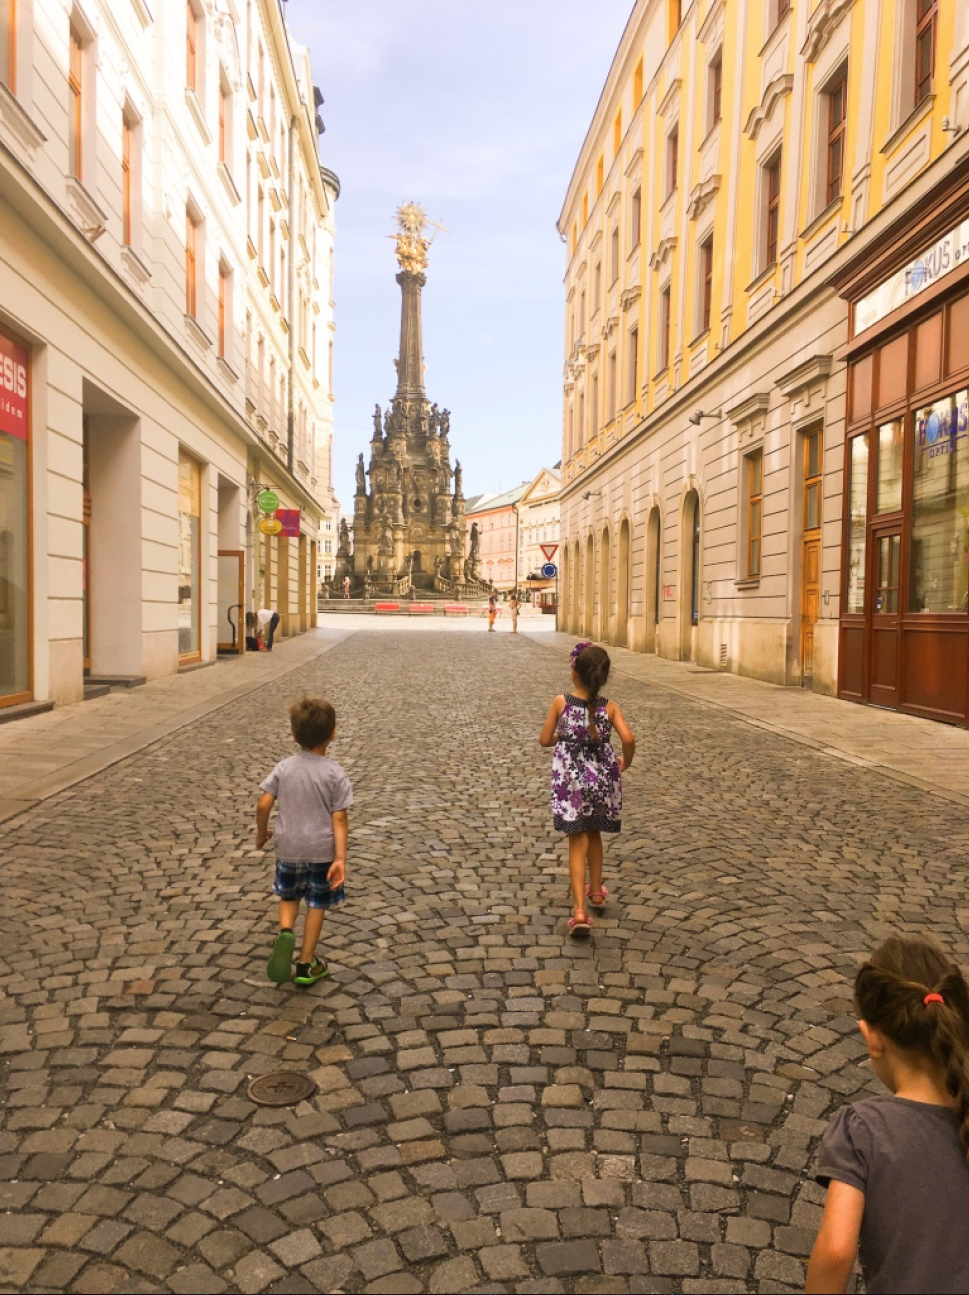 This kids running toward the city square